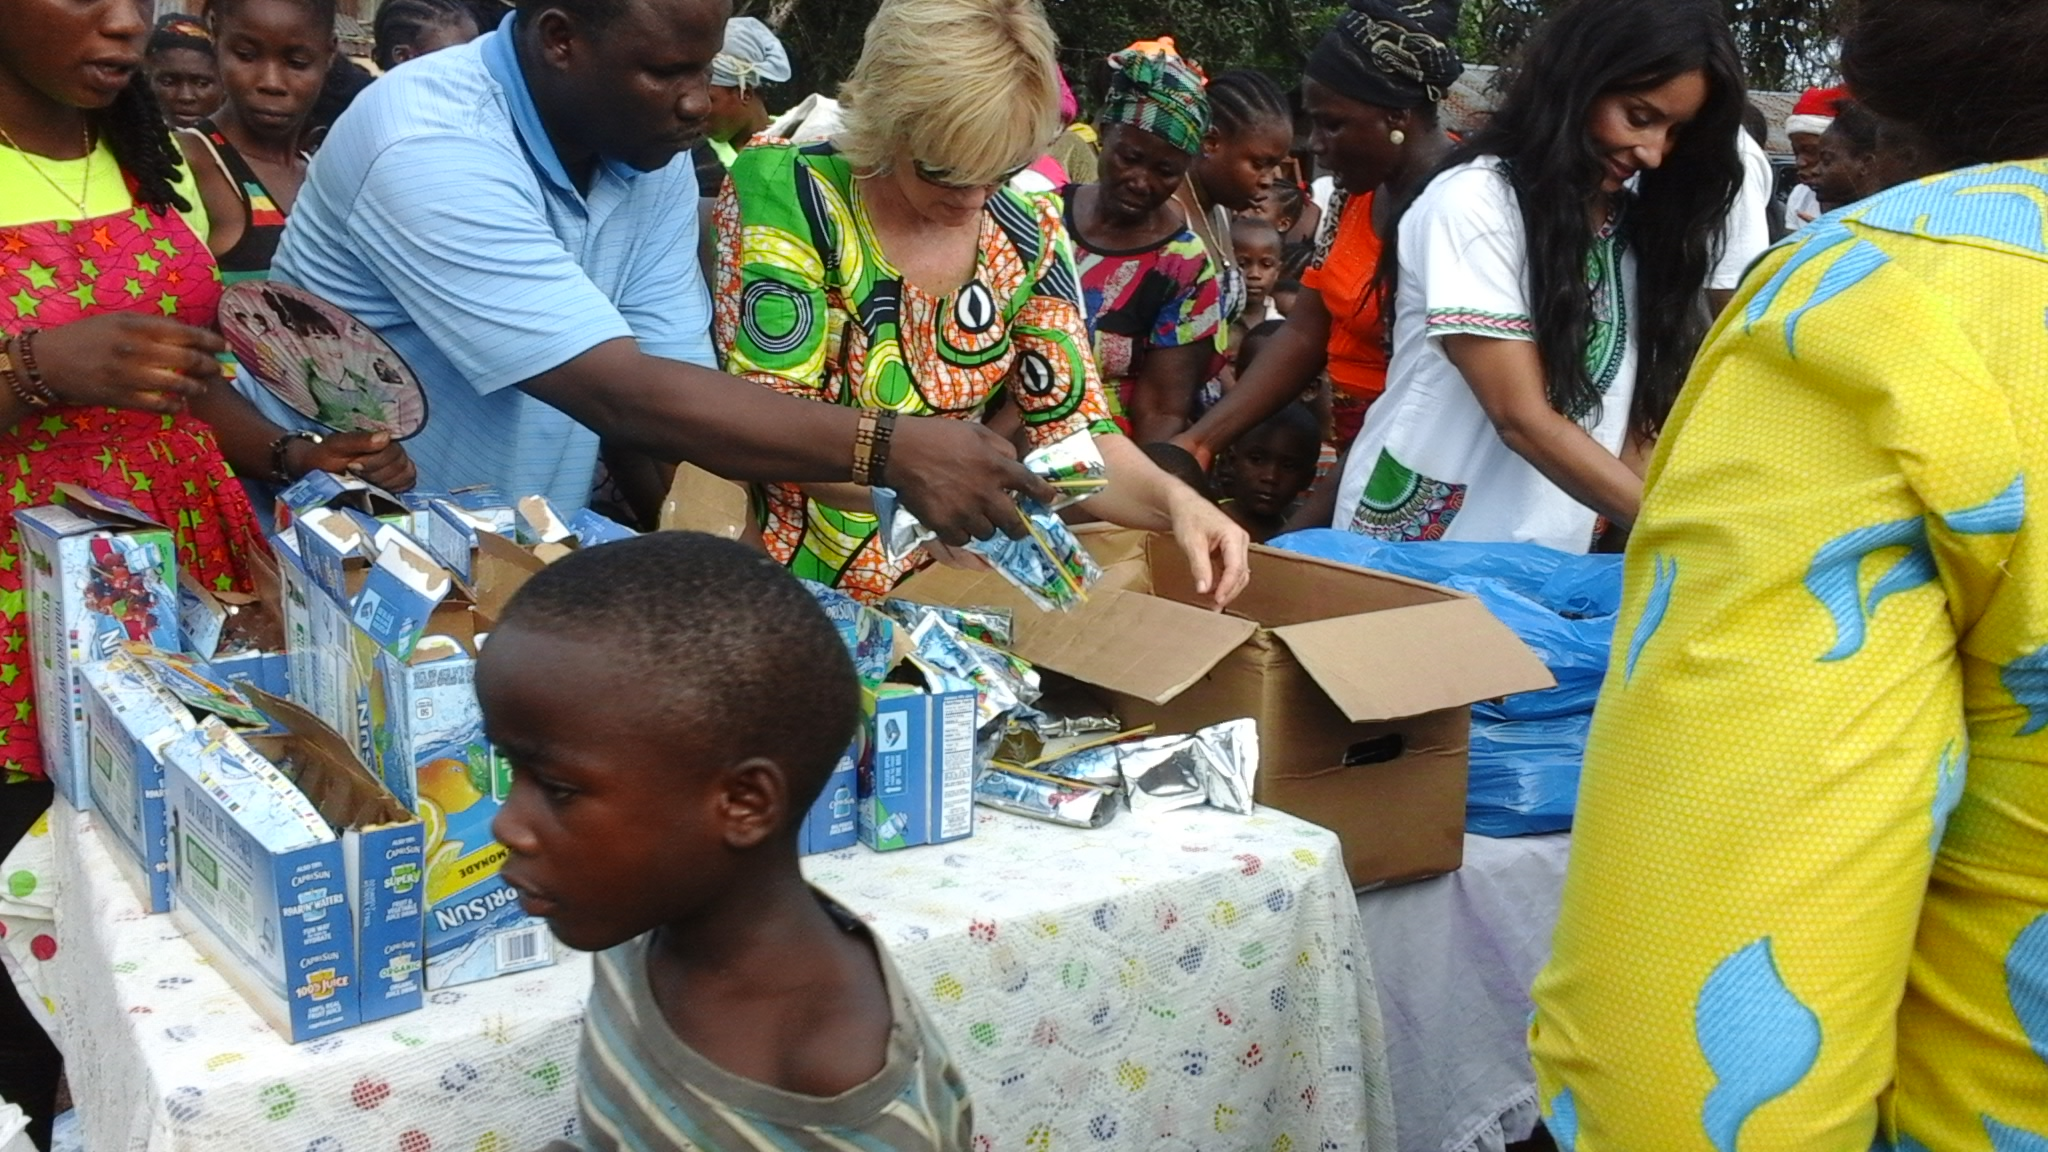 Another scene from the distribution